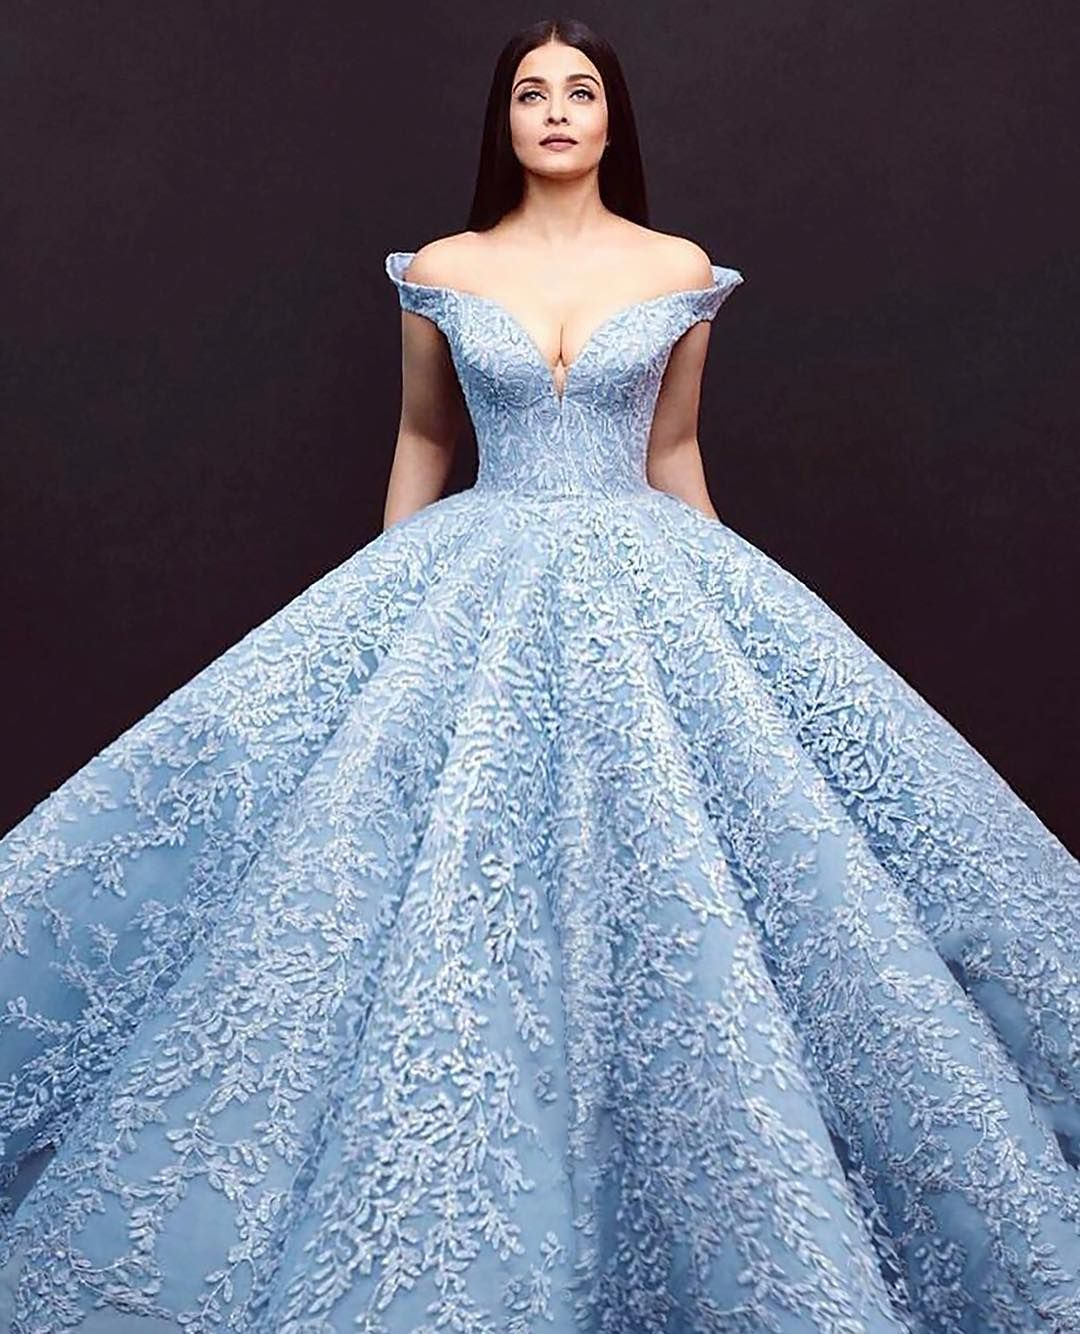 Pin by ajalasese on GLAMOUR Y BUEN GUSTO | Pinterest | Michael cinco ...